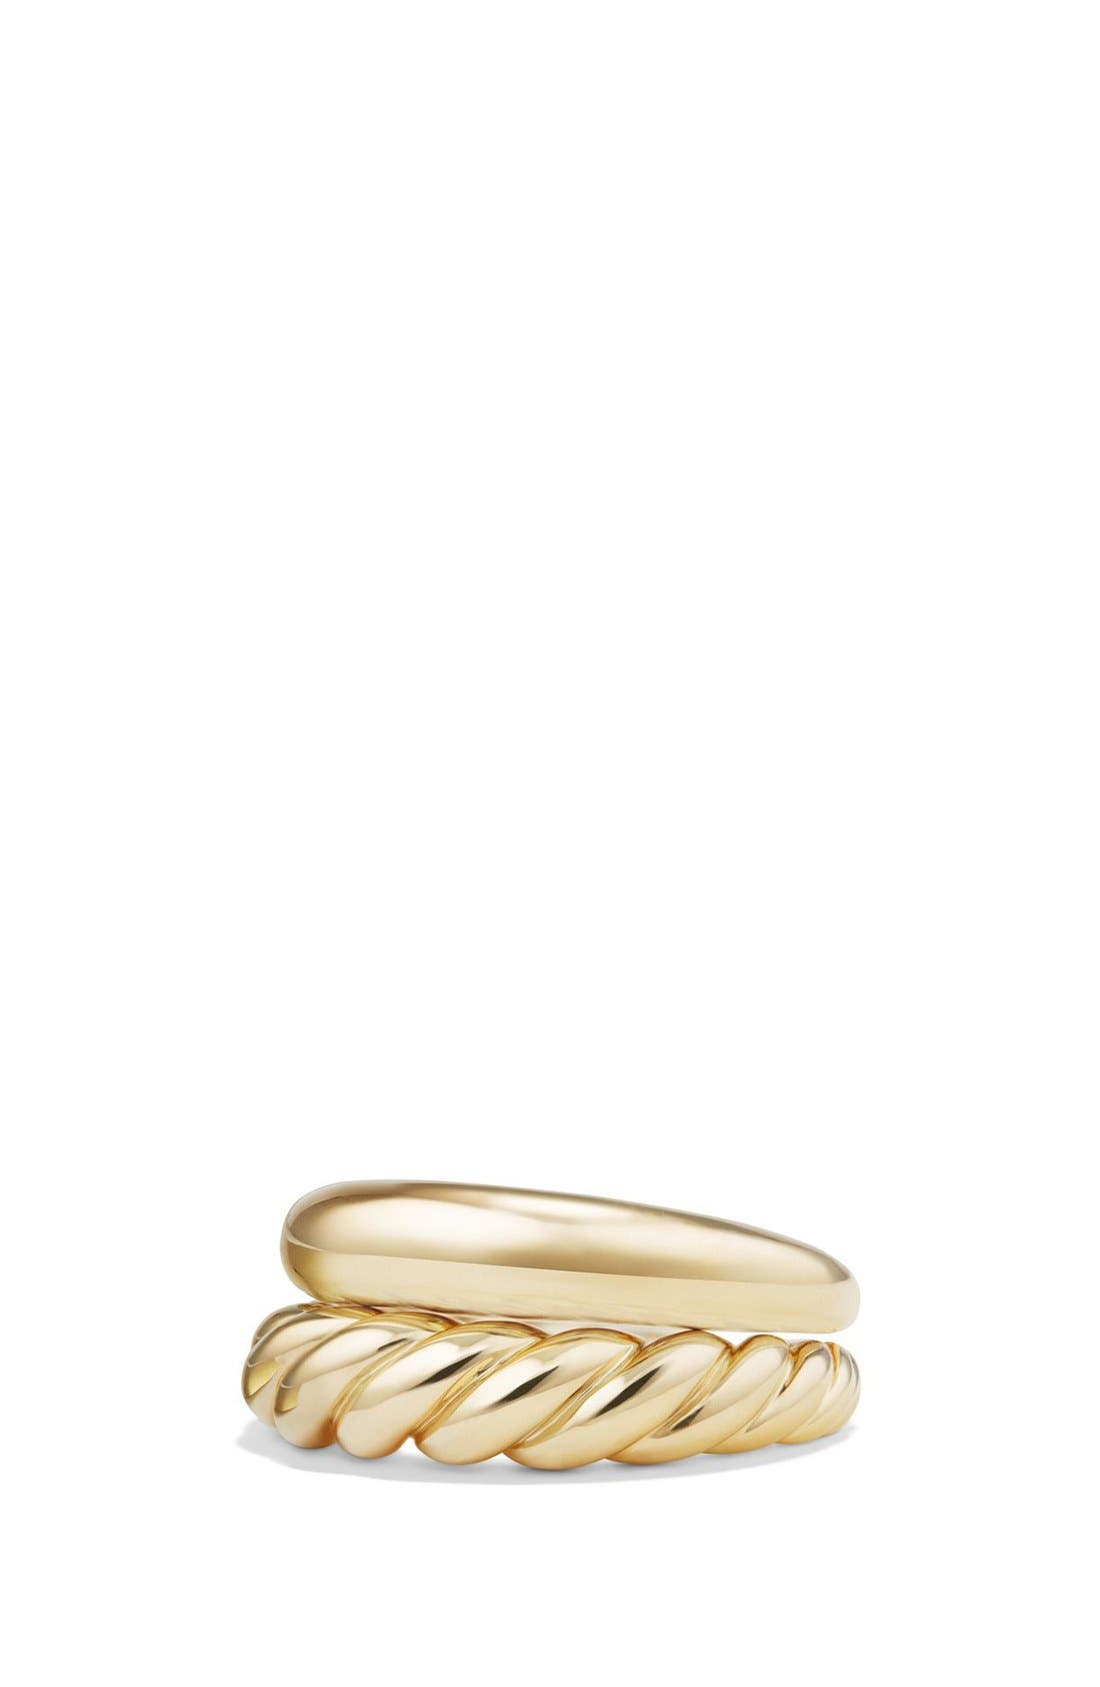 David Yurman 'Pure Form' Stack Rings in 18K Gold